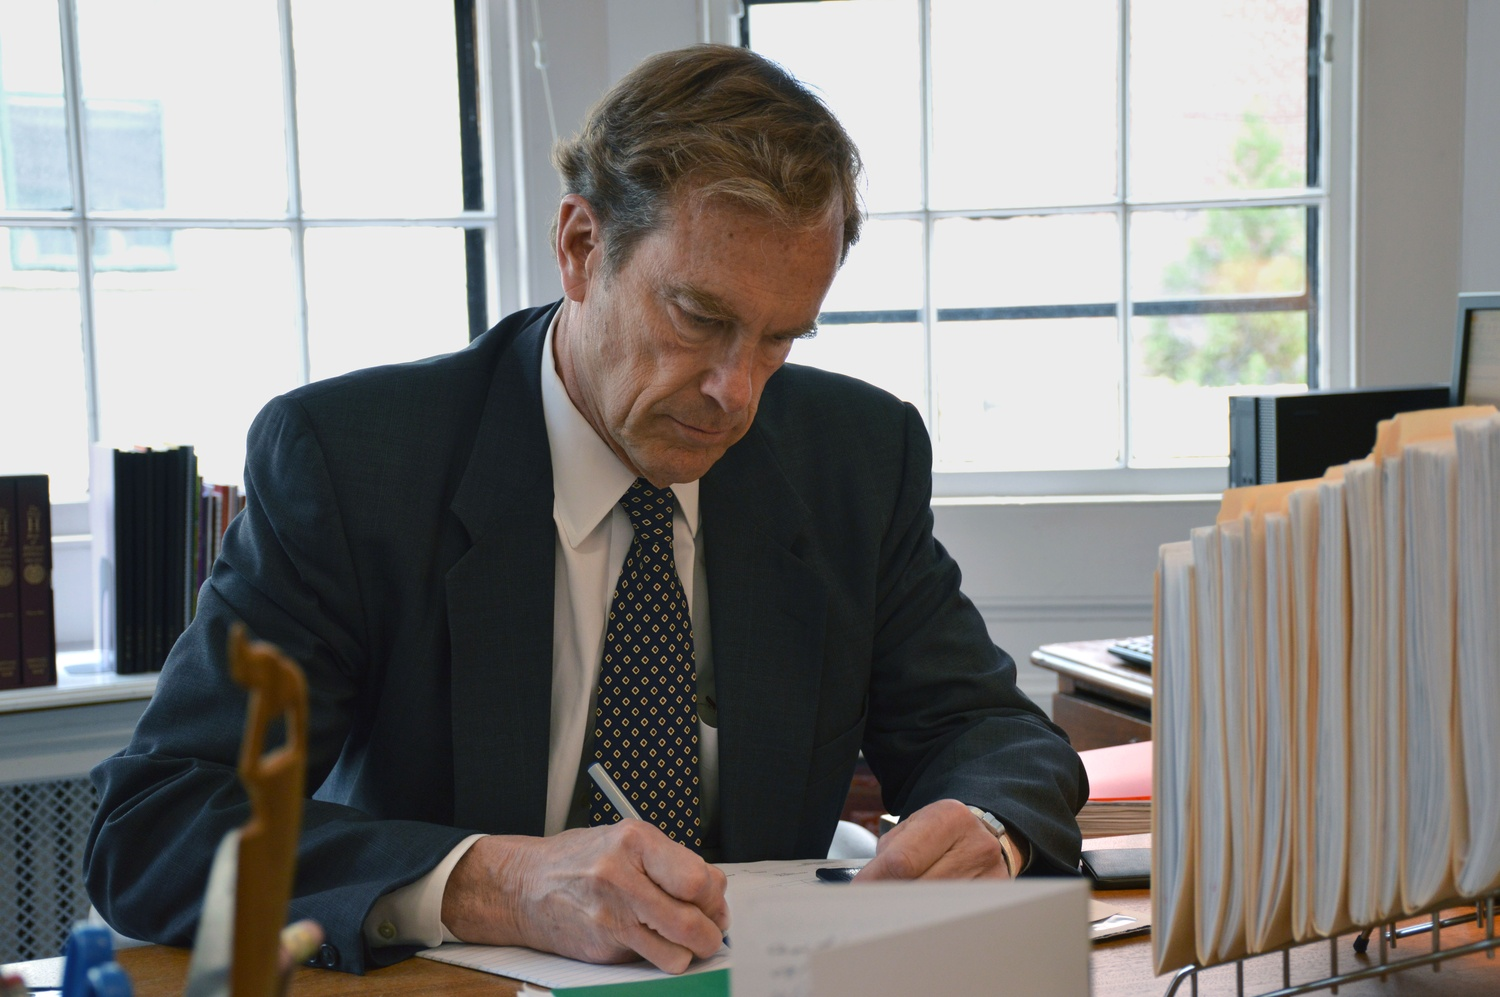 Interim Dean of Student Life Thomas A. Dingman '67 writes at his desk in the Freshman Dean's Office.